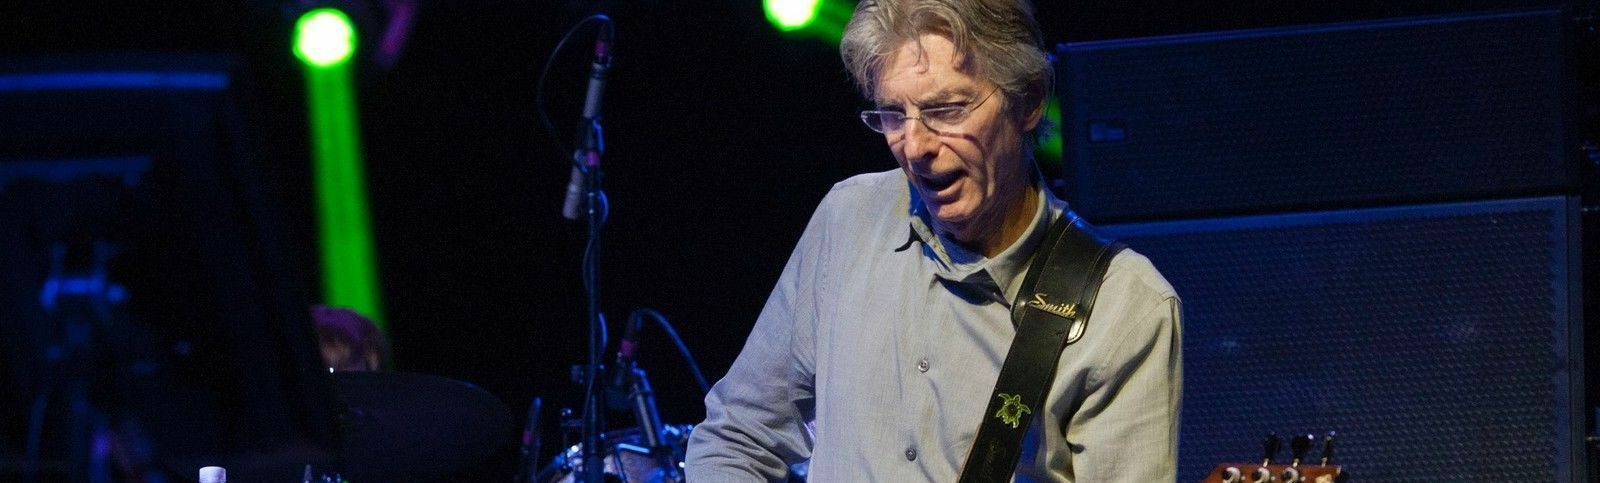 Phil Lesh and Friends 2 Day Pass Tickets (January 20-21, 21+ Event)